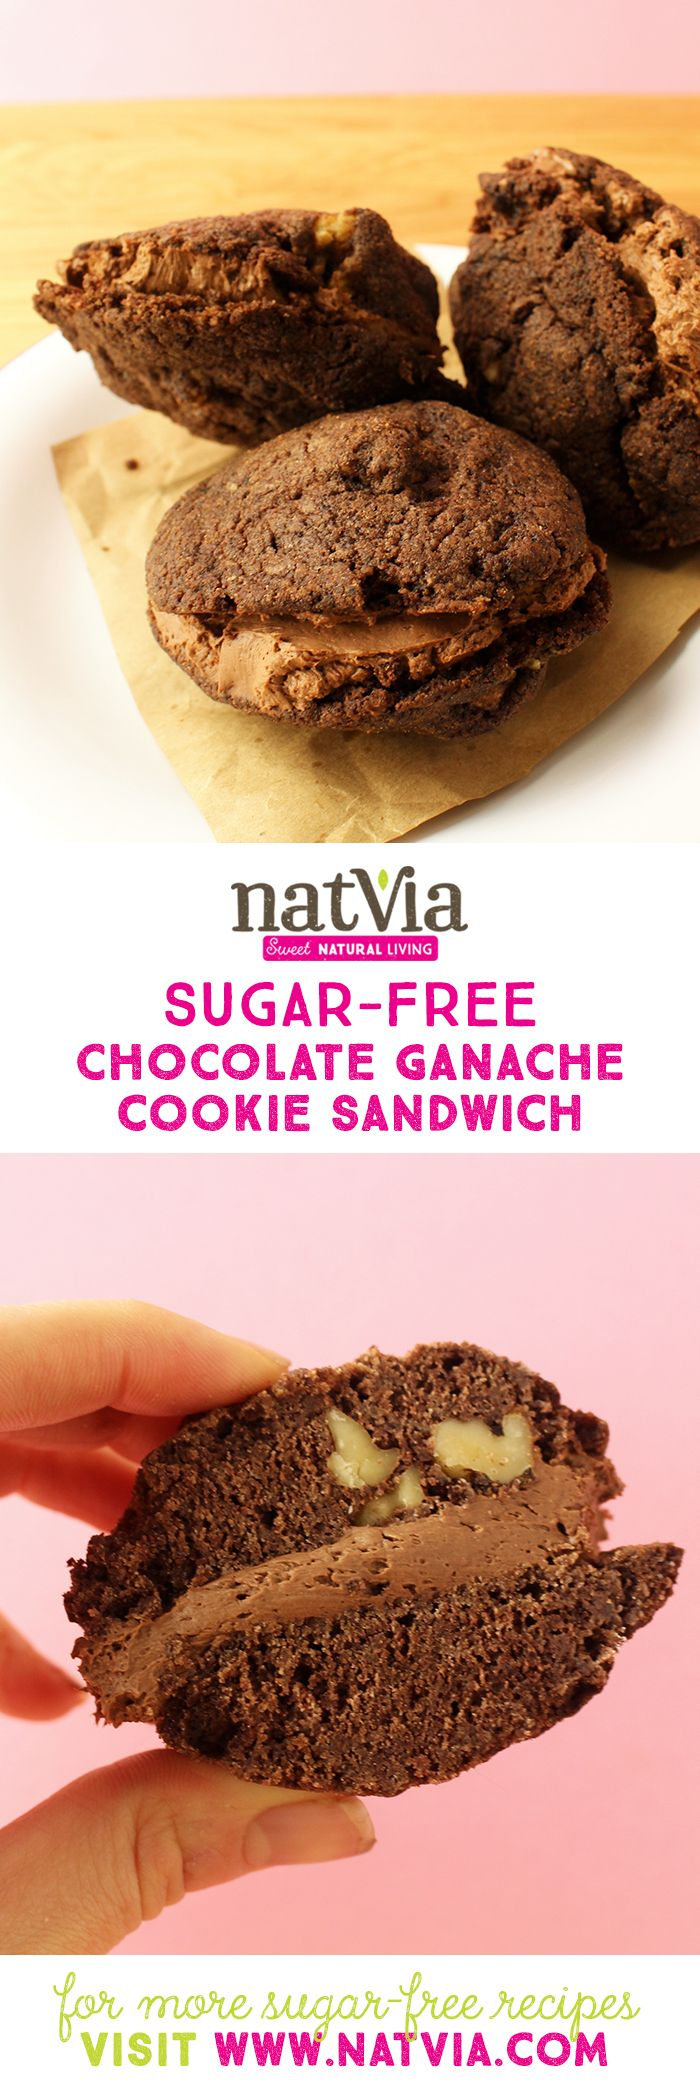 Indulge in one of our favourite #chocolate #cookie #recipes we've EVER made. Adding some extra crunch into an already tasty #cookie base we've added some walnut to perfectly complement the cream #cheese, #GANACHE FILLING in the middle! #healthy #sugarfree #natvia